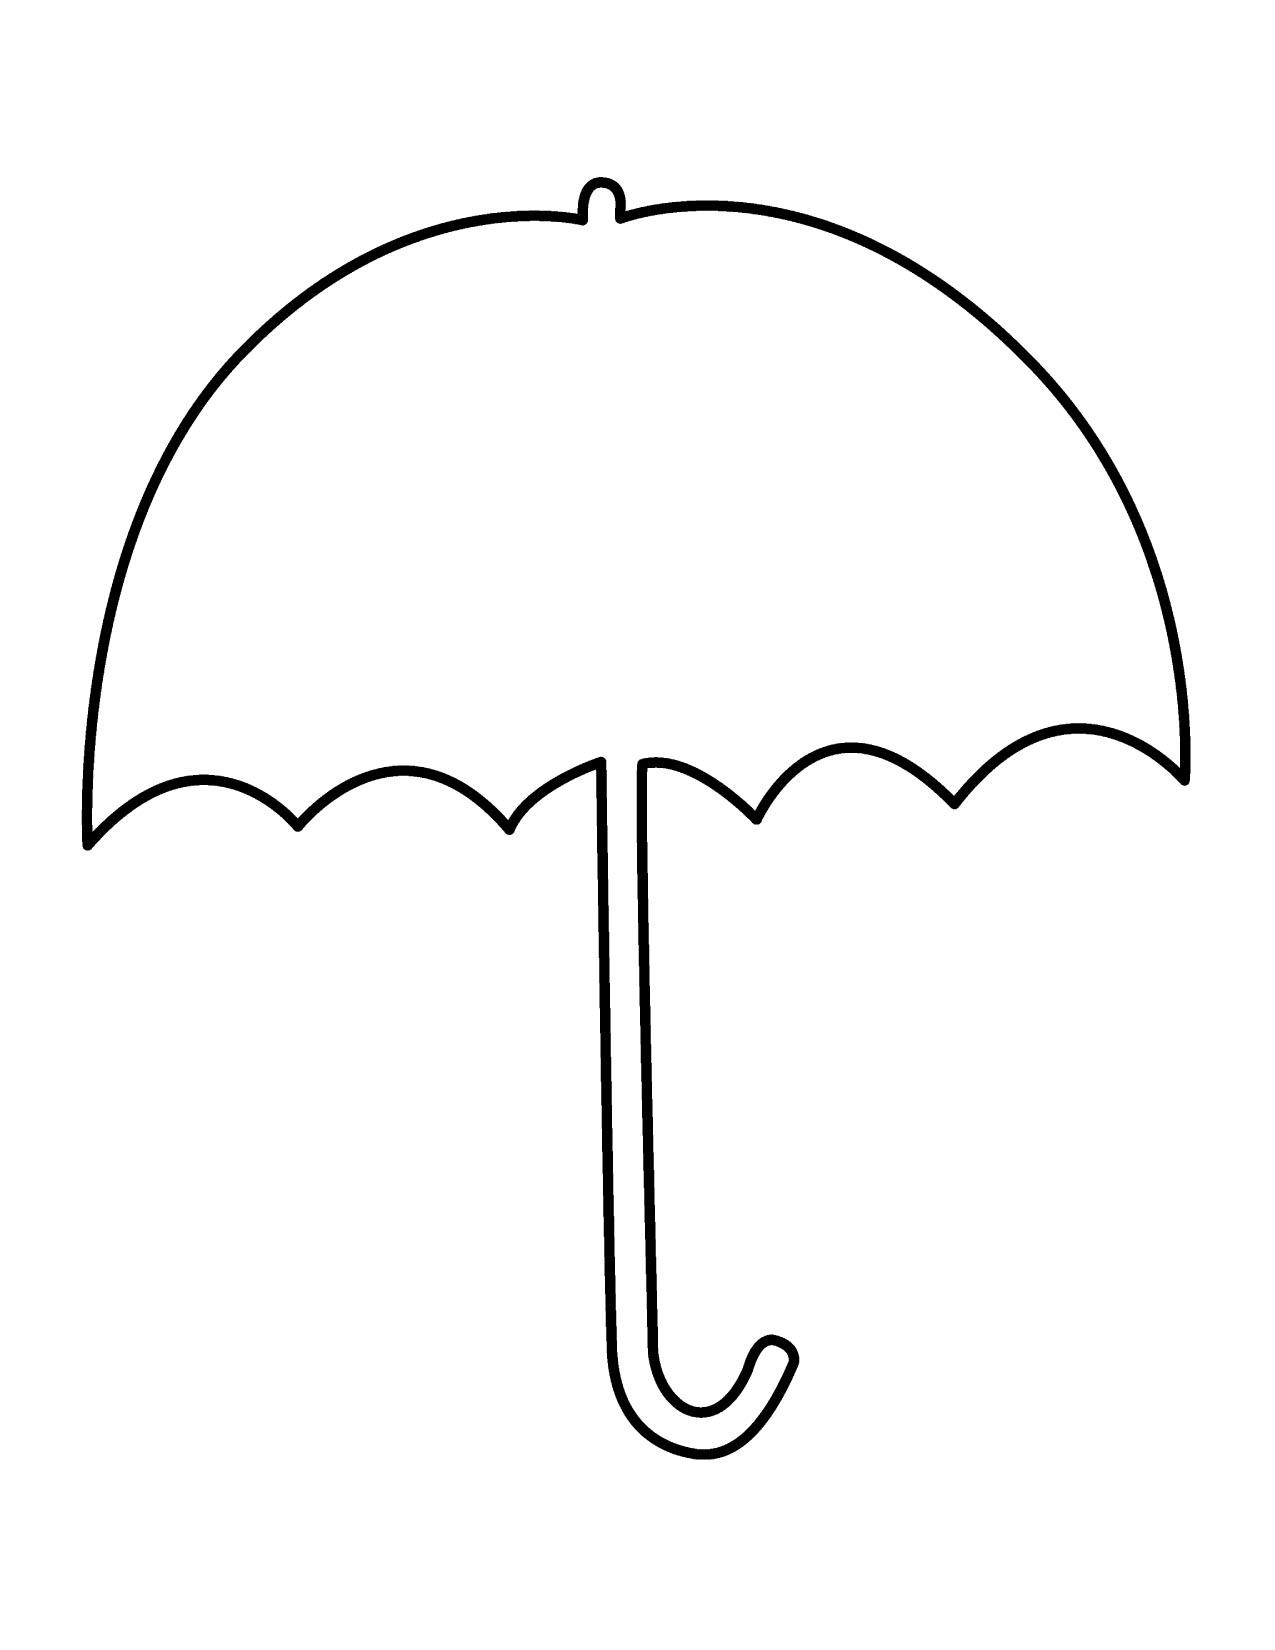 Free printable coloring pages of umbrellas - Project Based Learning